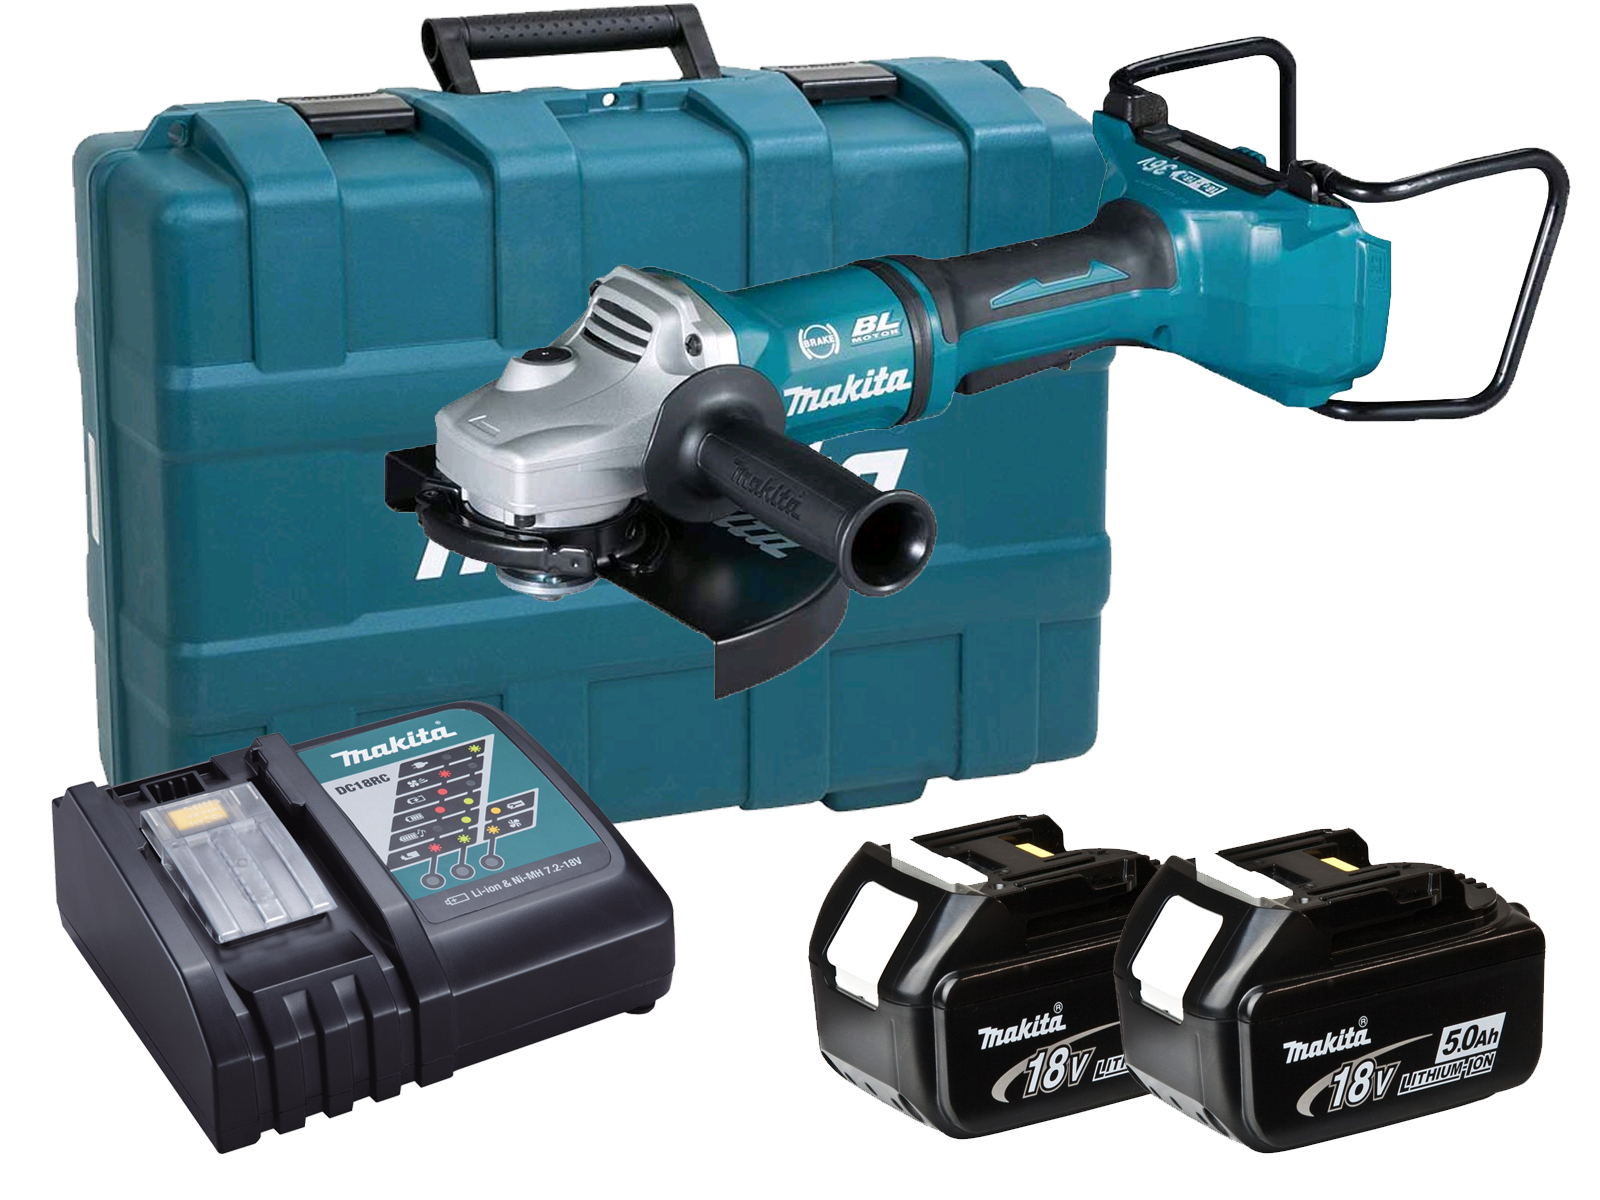 MAKITA 18V TWIN BRUSHLESS ANGLE GRINDER 230MM - DGA900 - 5.0AH PACK - DGA900PT2